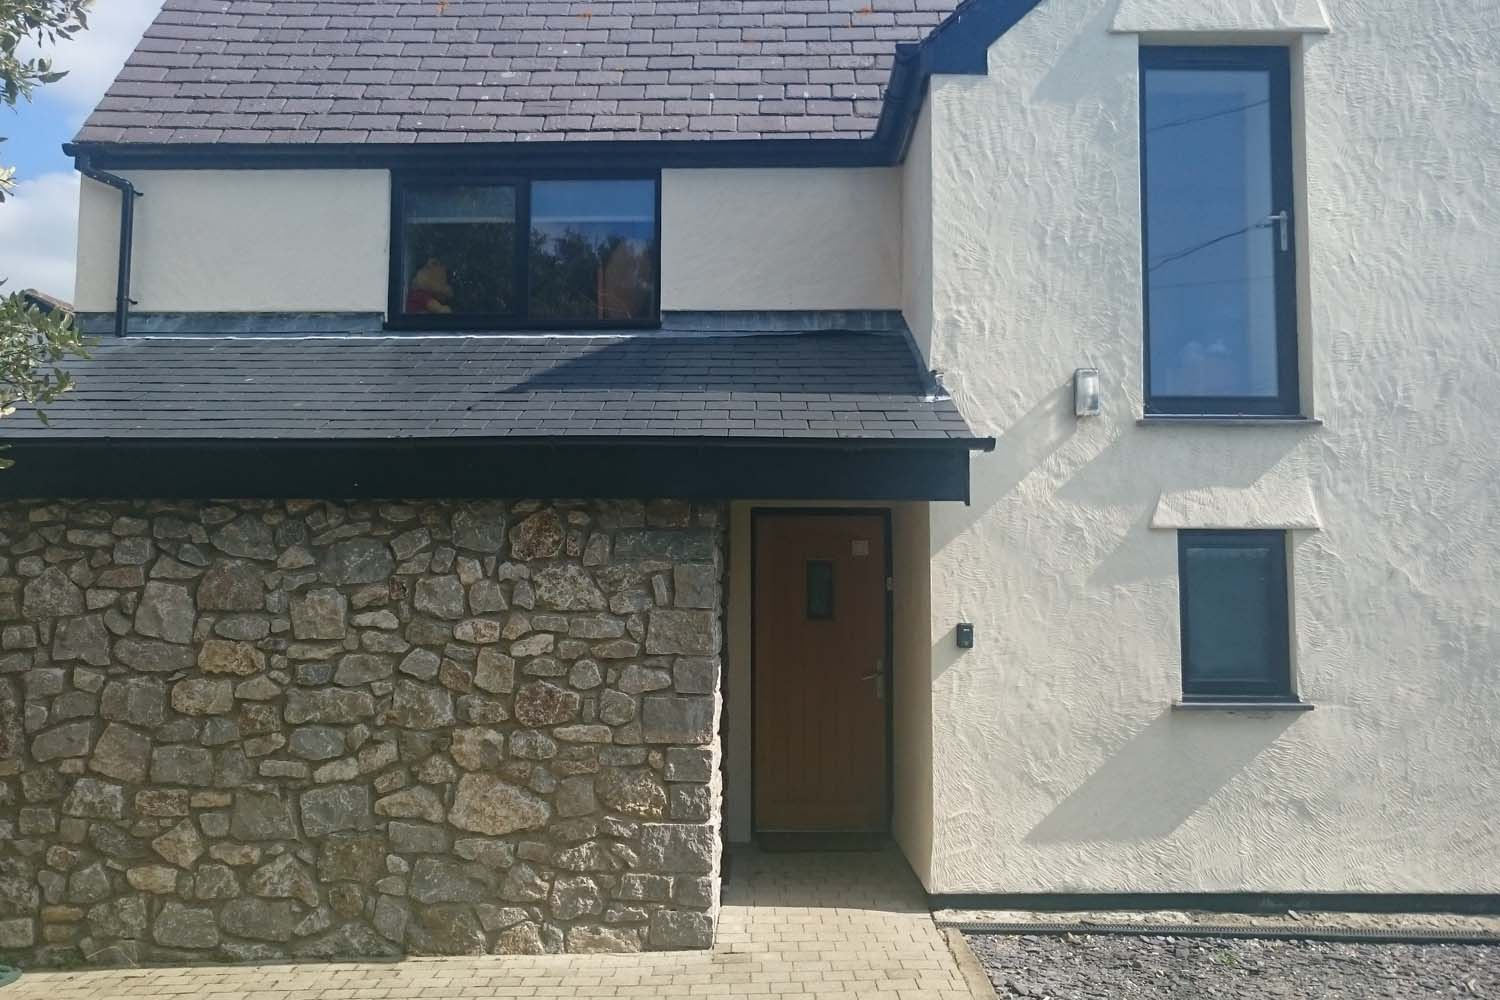 Anglesey Architect